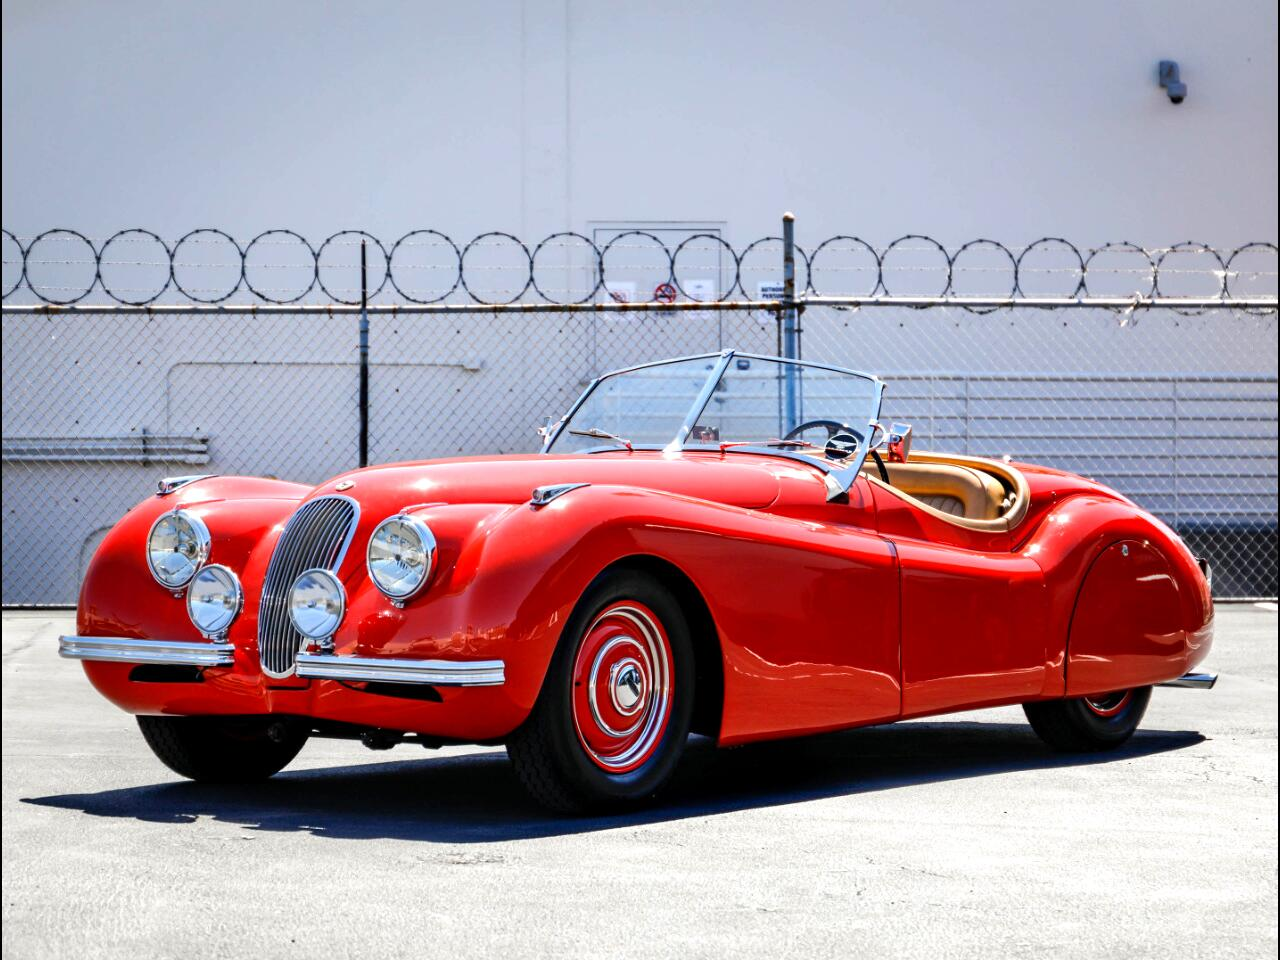 1950 Jaguar XK 120 Alloy